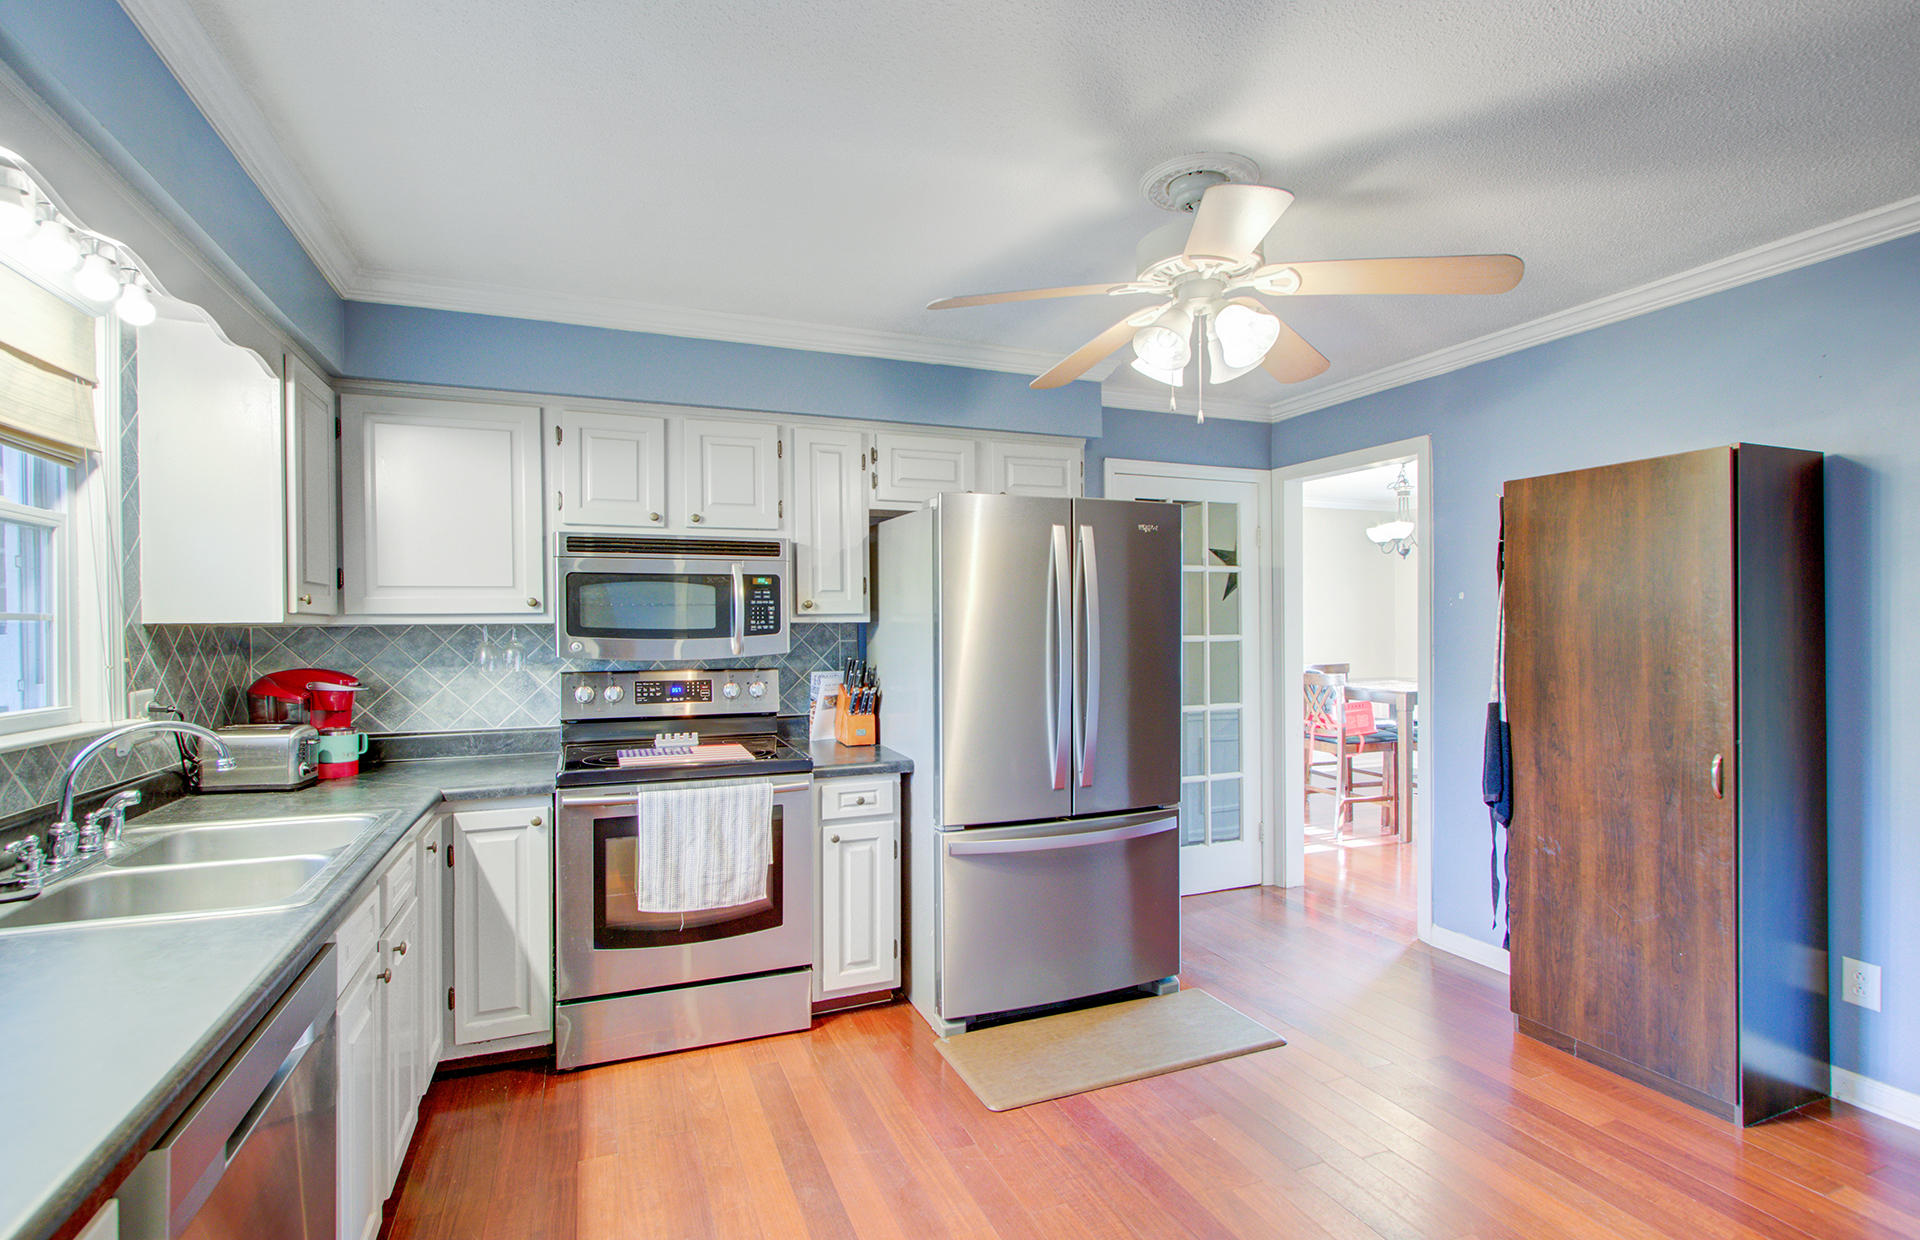 Kings Grant Homes For Sale - 107 Millbrook, Summerville, SC - 21